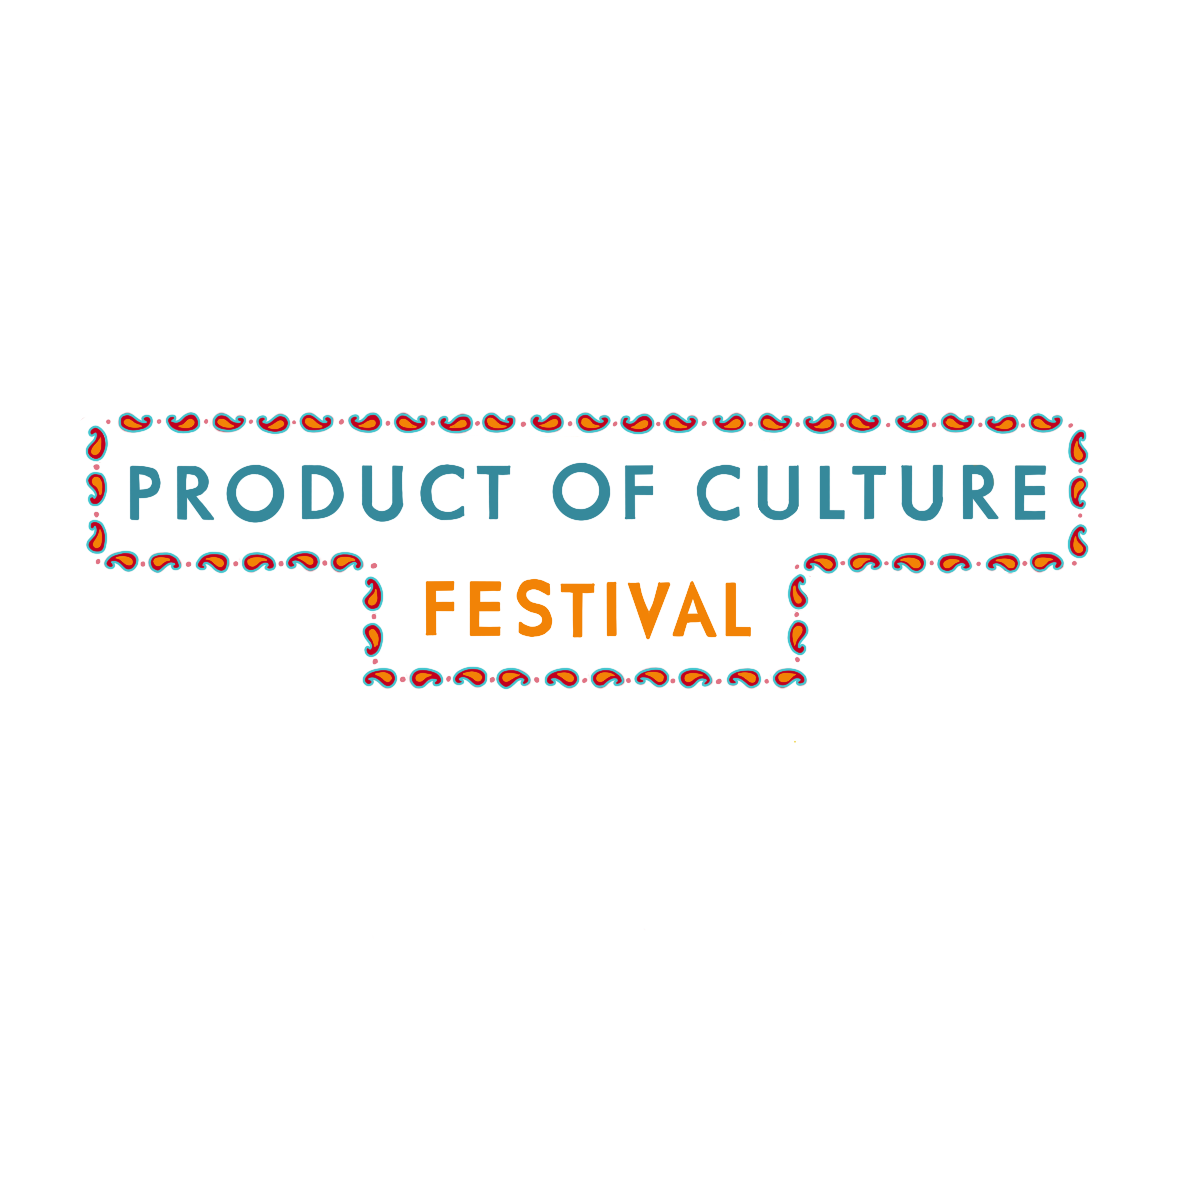 Product of Culture Festival